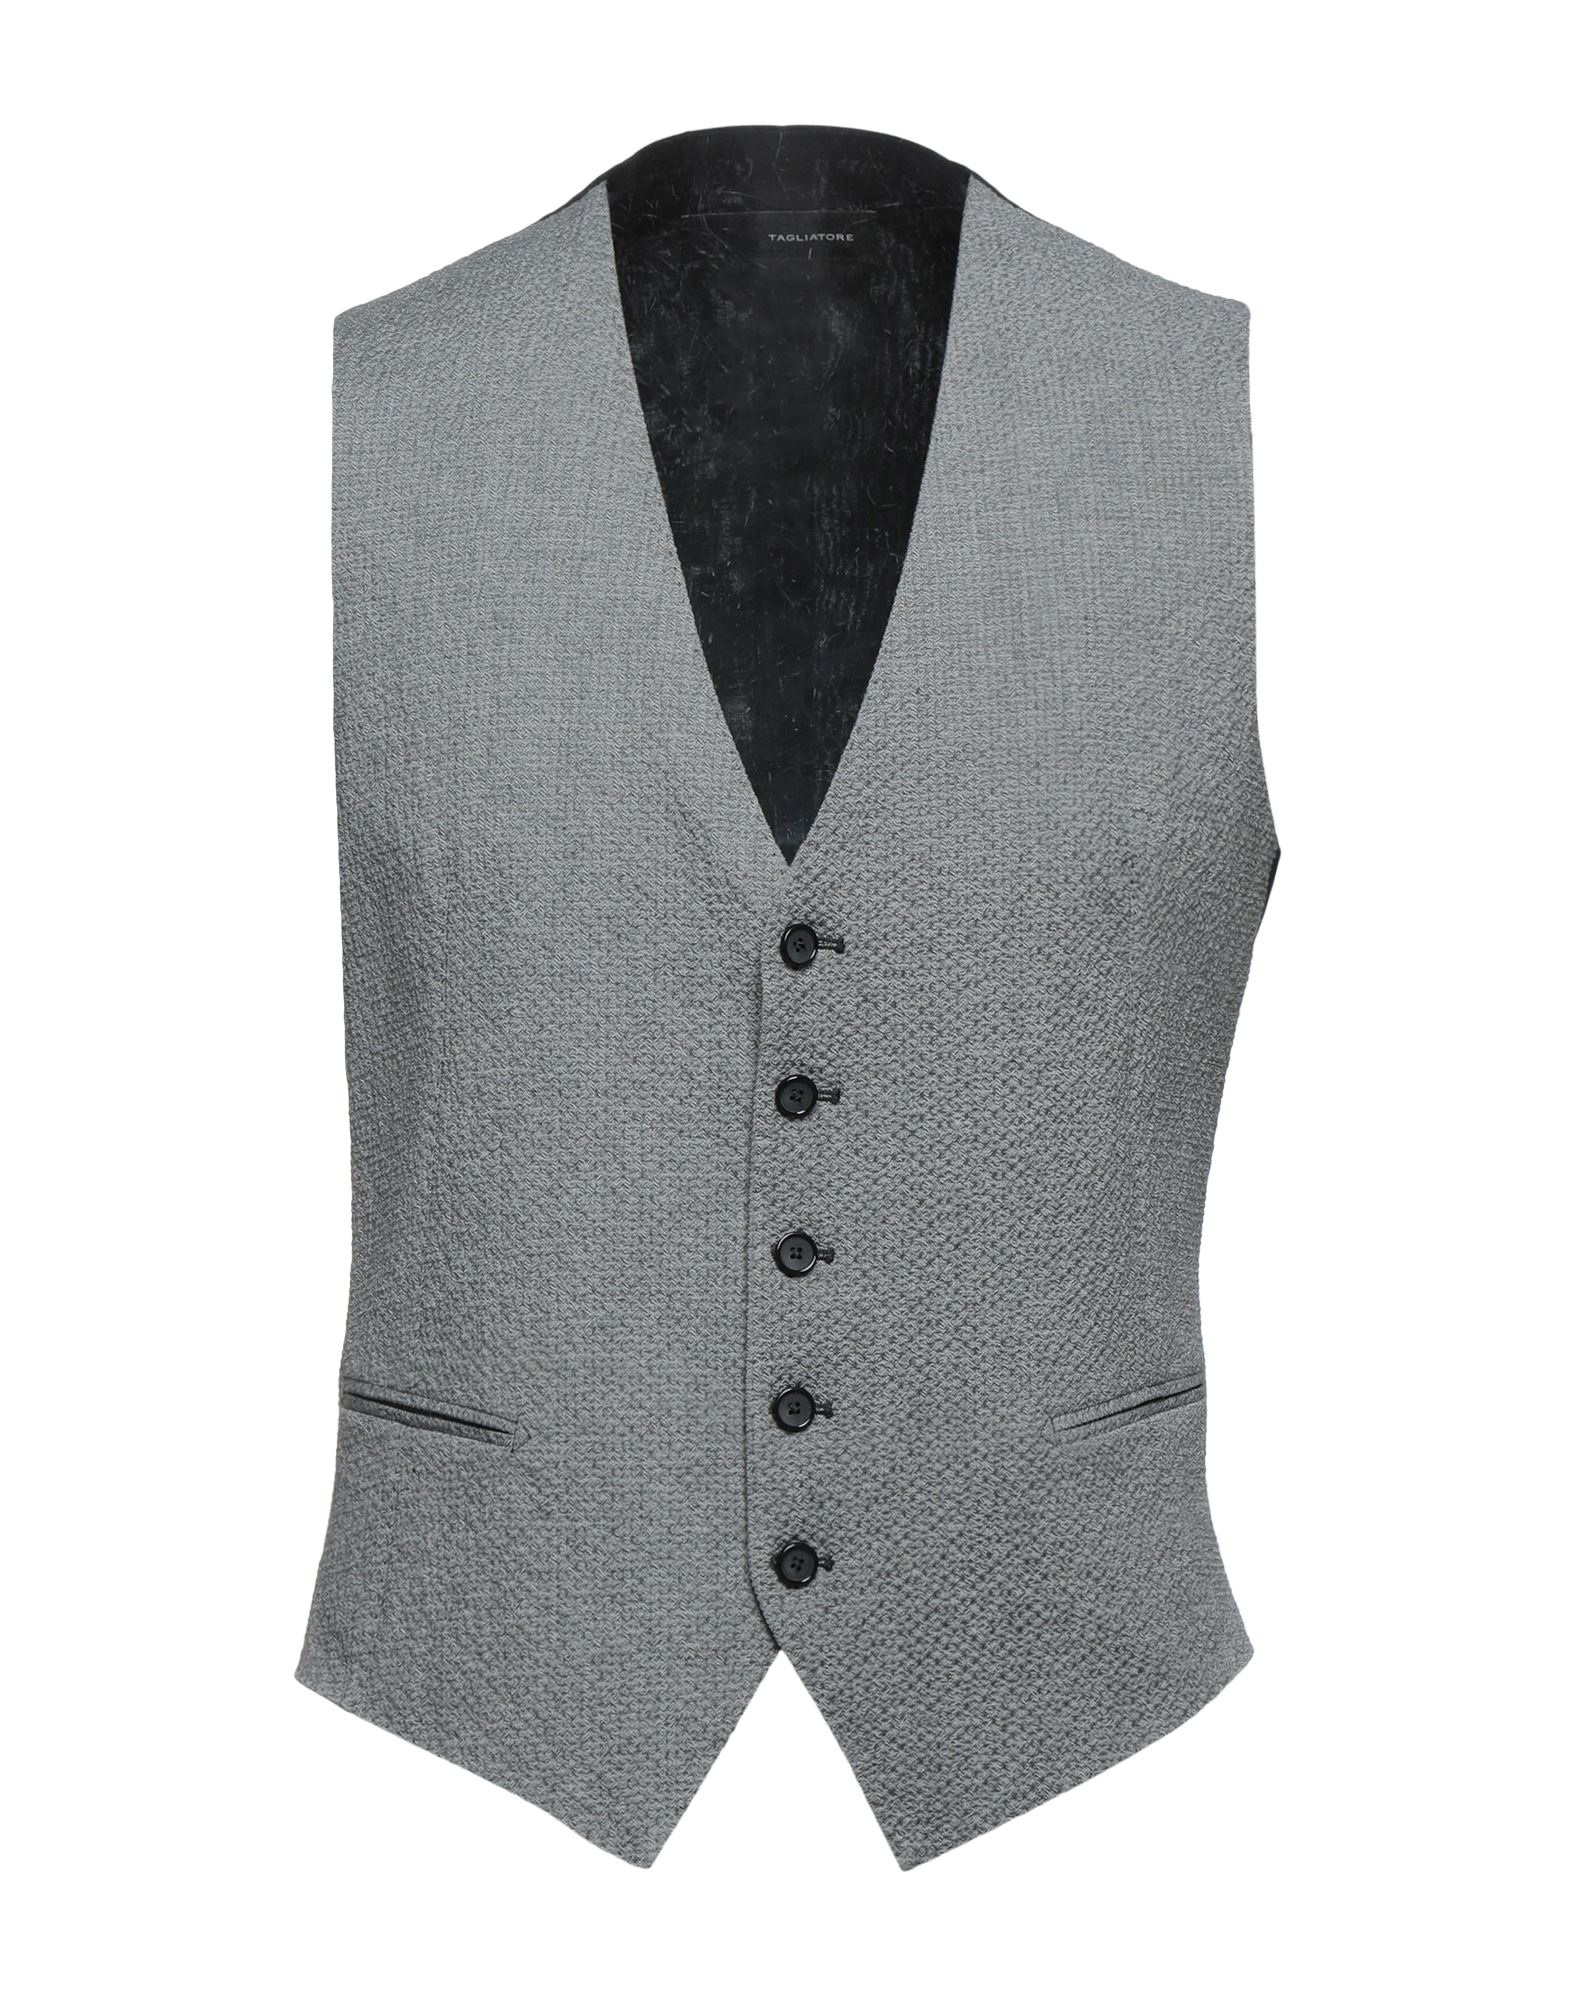 TAGLIATORE Vests. plain weave, wrinkled effect, half-belt, basic solid color, v-neck, sleeveless, single-breasted, multipockets, button closing, pleated pocket, fully lined, stretch. 96% Cotton, 3% Elastane, 1% Polyamide